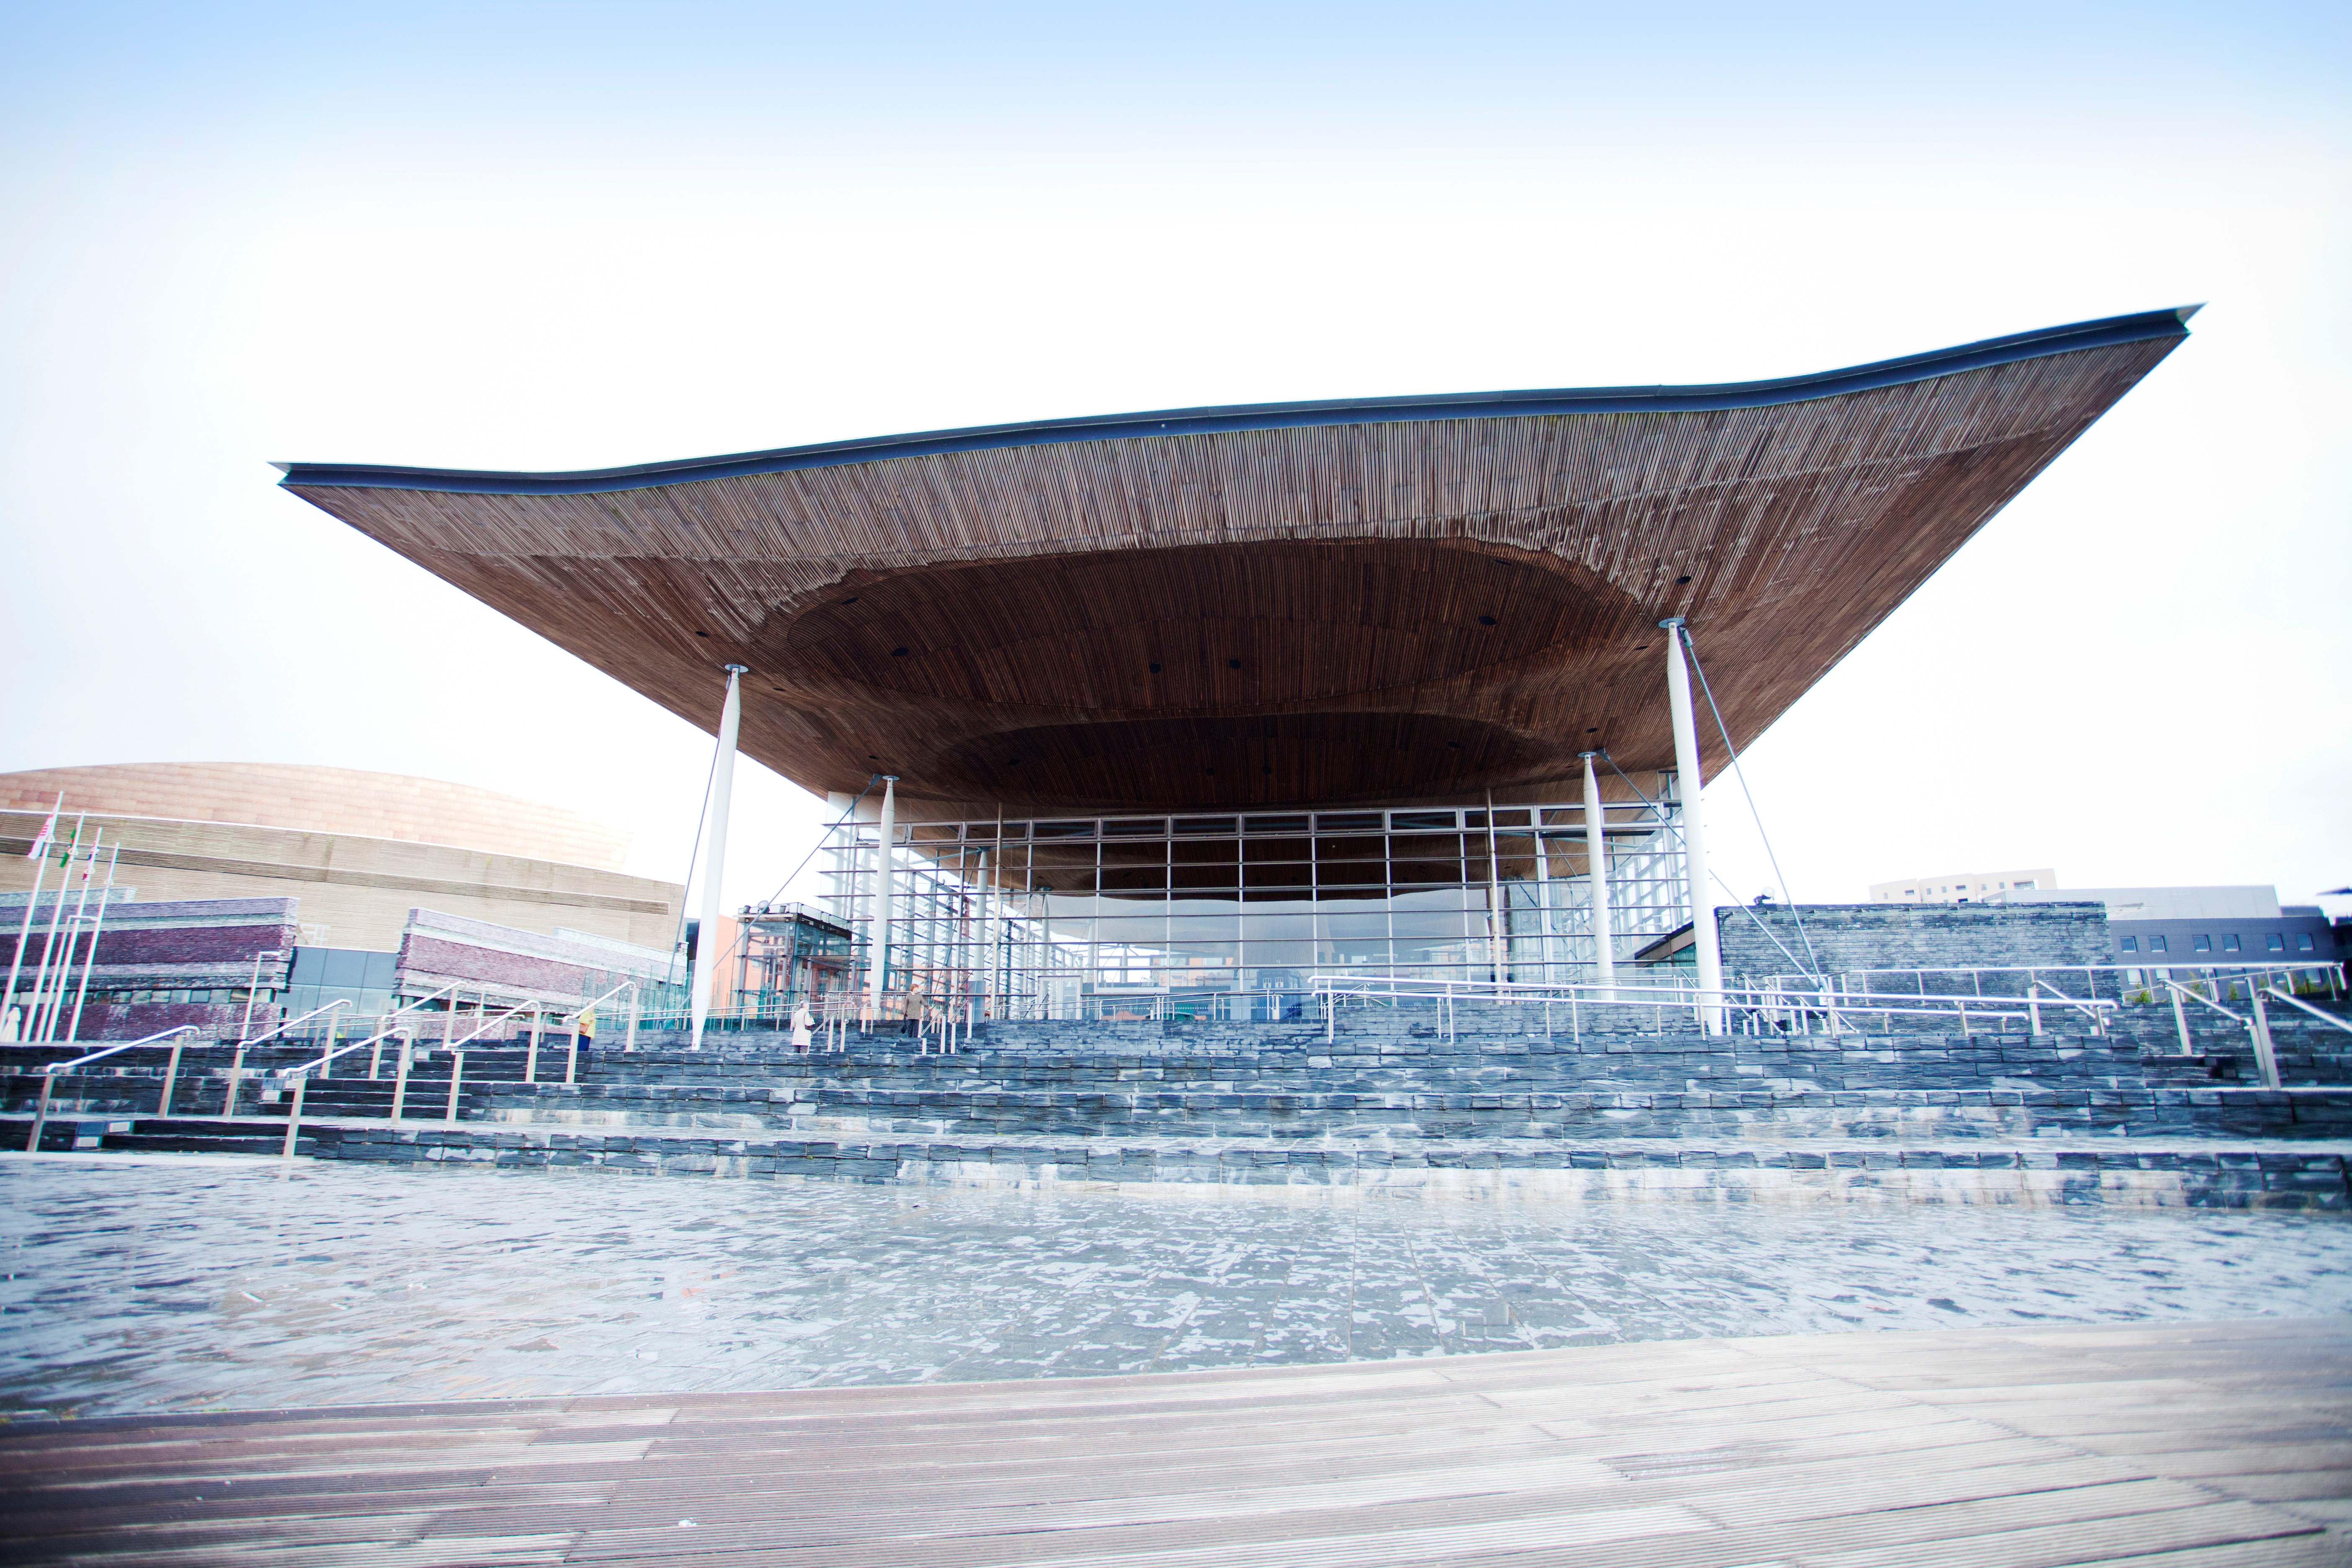 National Assembly for Wales Senedd building